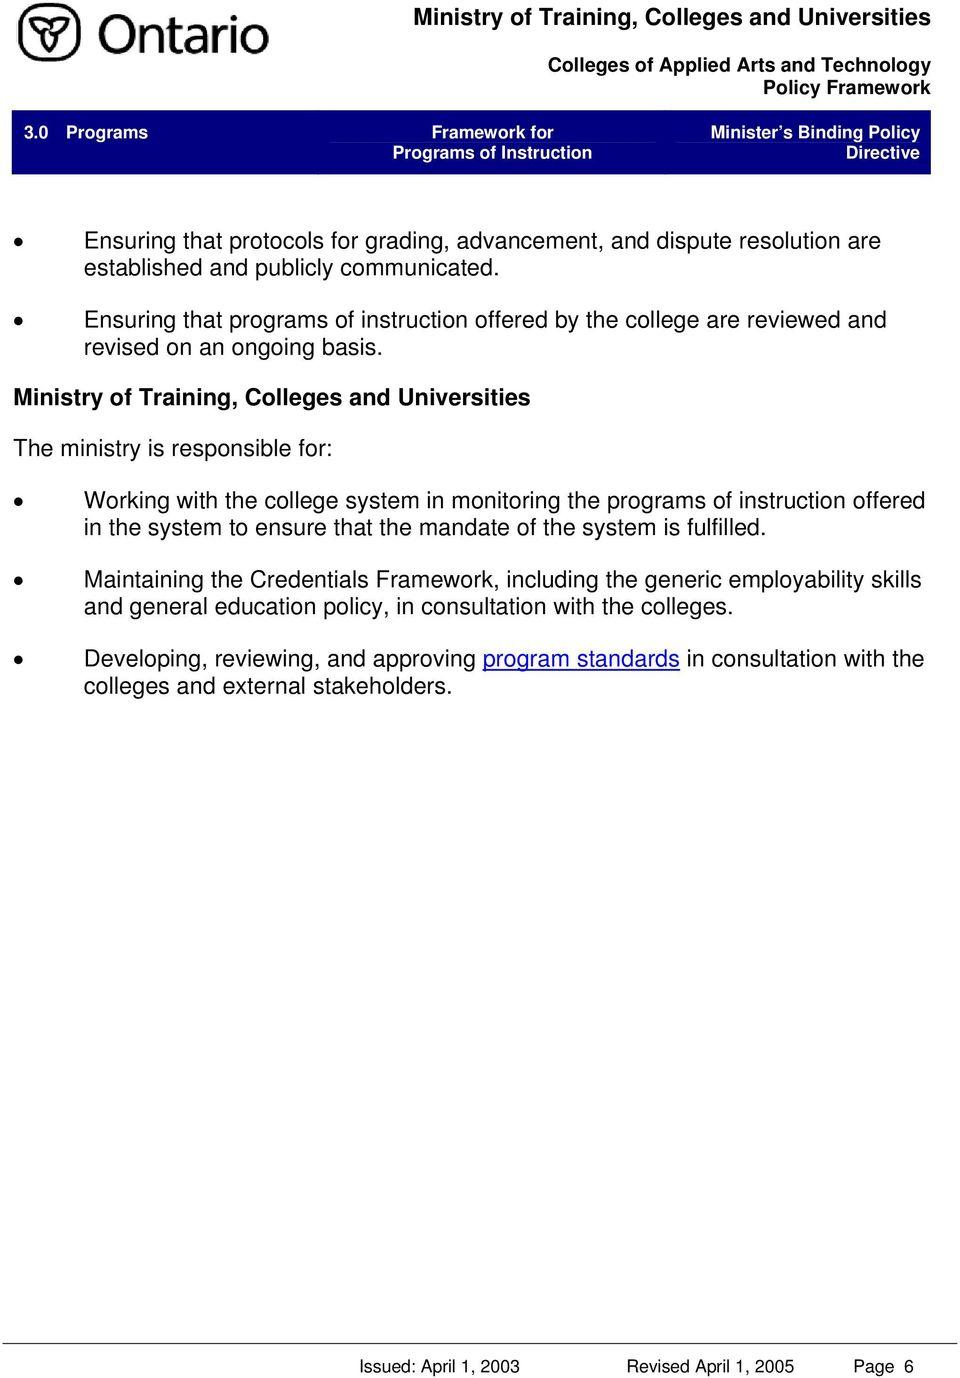 Ministry of Training, Colleges and Universities The ministry is responsible for: Working with the college system in monitoring the programs of instruction offered in the system to ensure that the